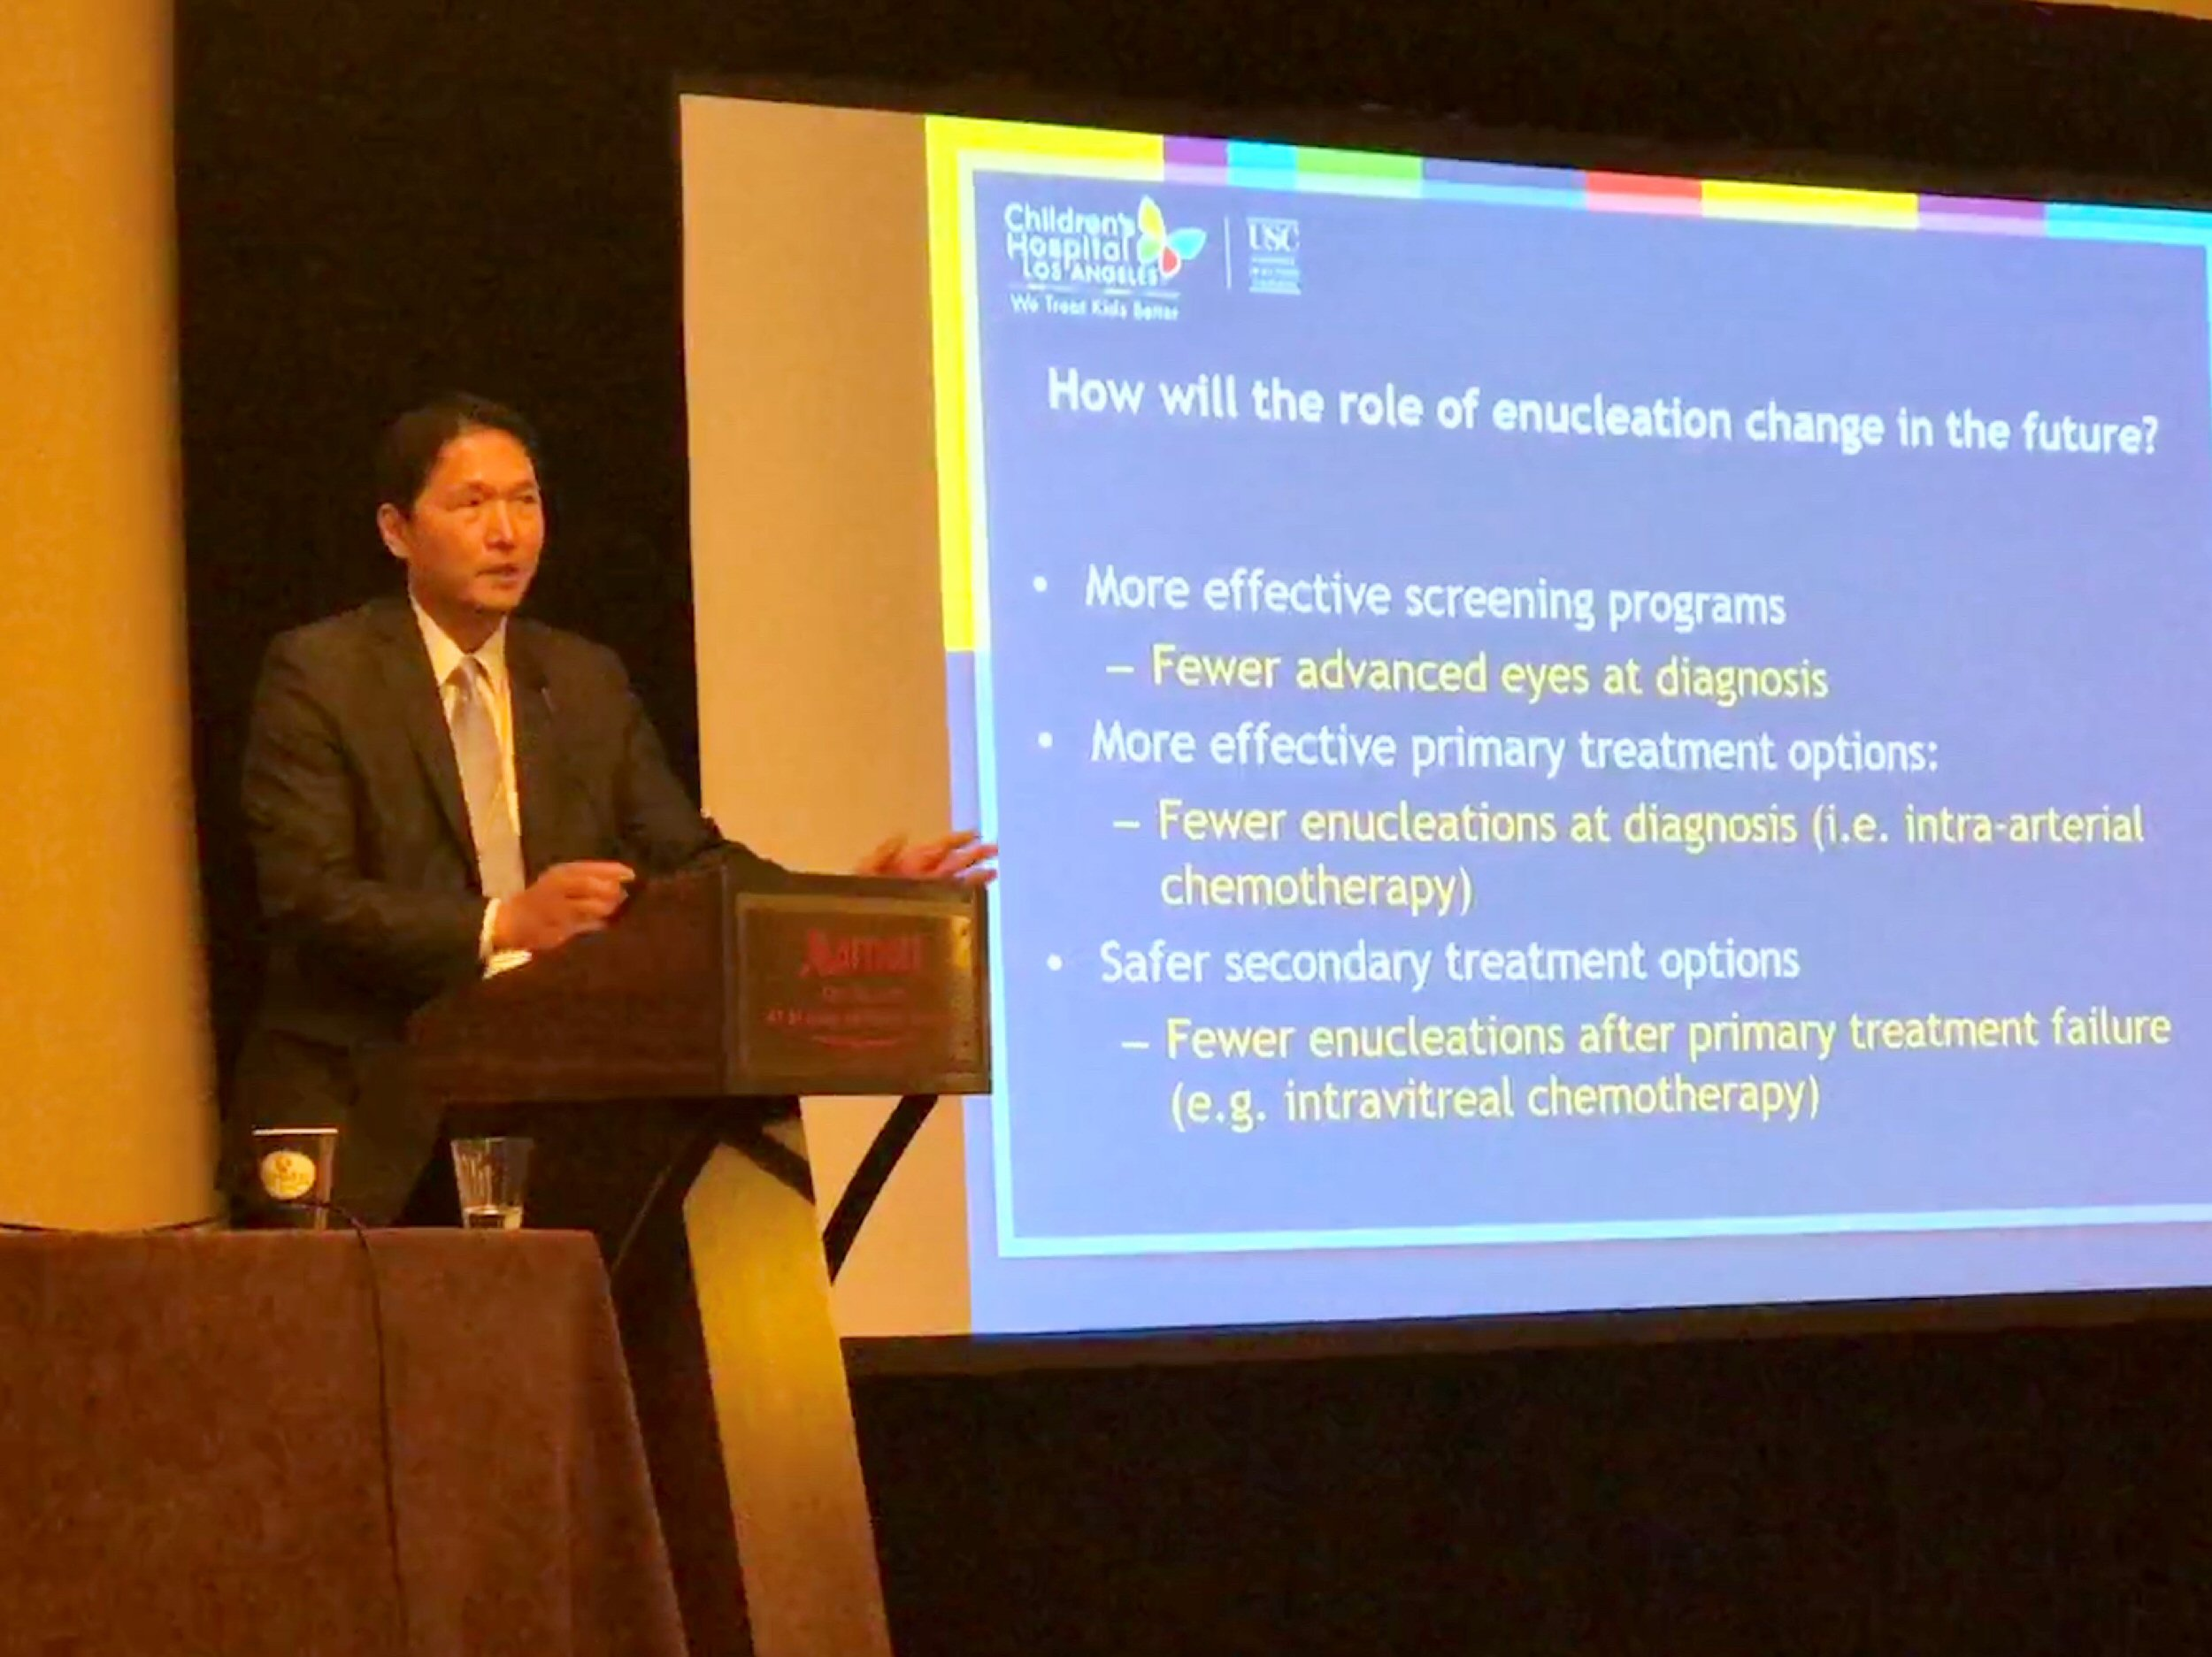 "Jonathan Kim presents on the changing role of enucleation, and its continued importance as life-saving treatment for retinoblastoma. The slide seen behind him is titled: ""how will the role of enucleation change in the future? Three evolving scenarios are followed by their impacts: More effective screening programs – fewer advanced eyes at diagnosis; More effective primary treatment options, i.e. intra-arterial chemotherapy (fewer enucleations at diagnosis); Safer secondary treatment options, i.e. intravitreal chemotherapy (fewer enucleations after primary treatment)."